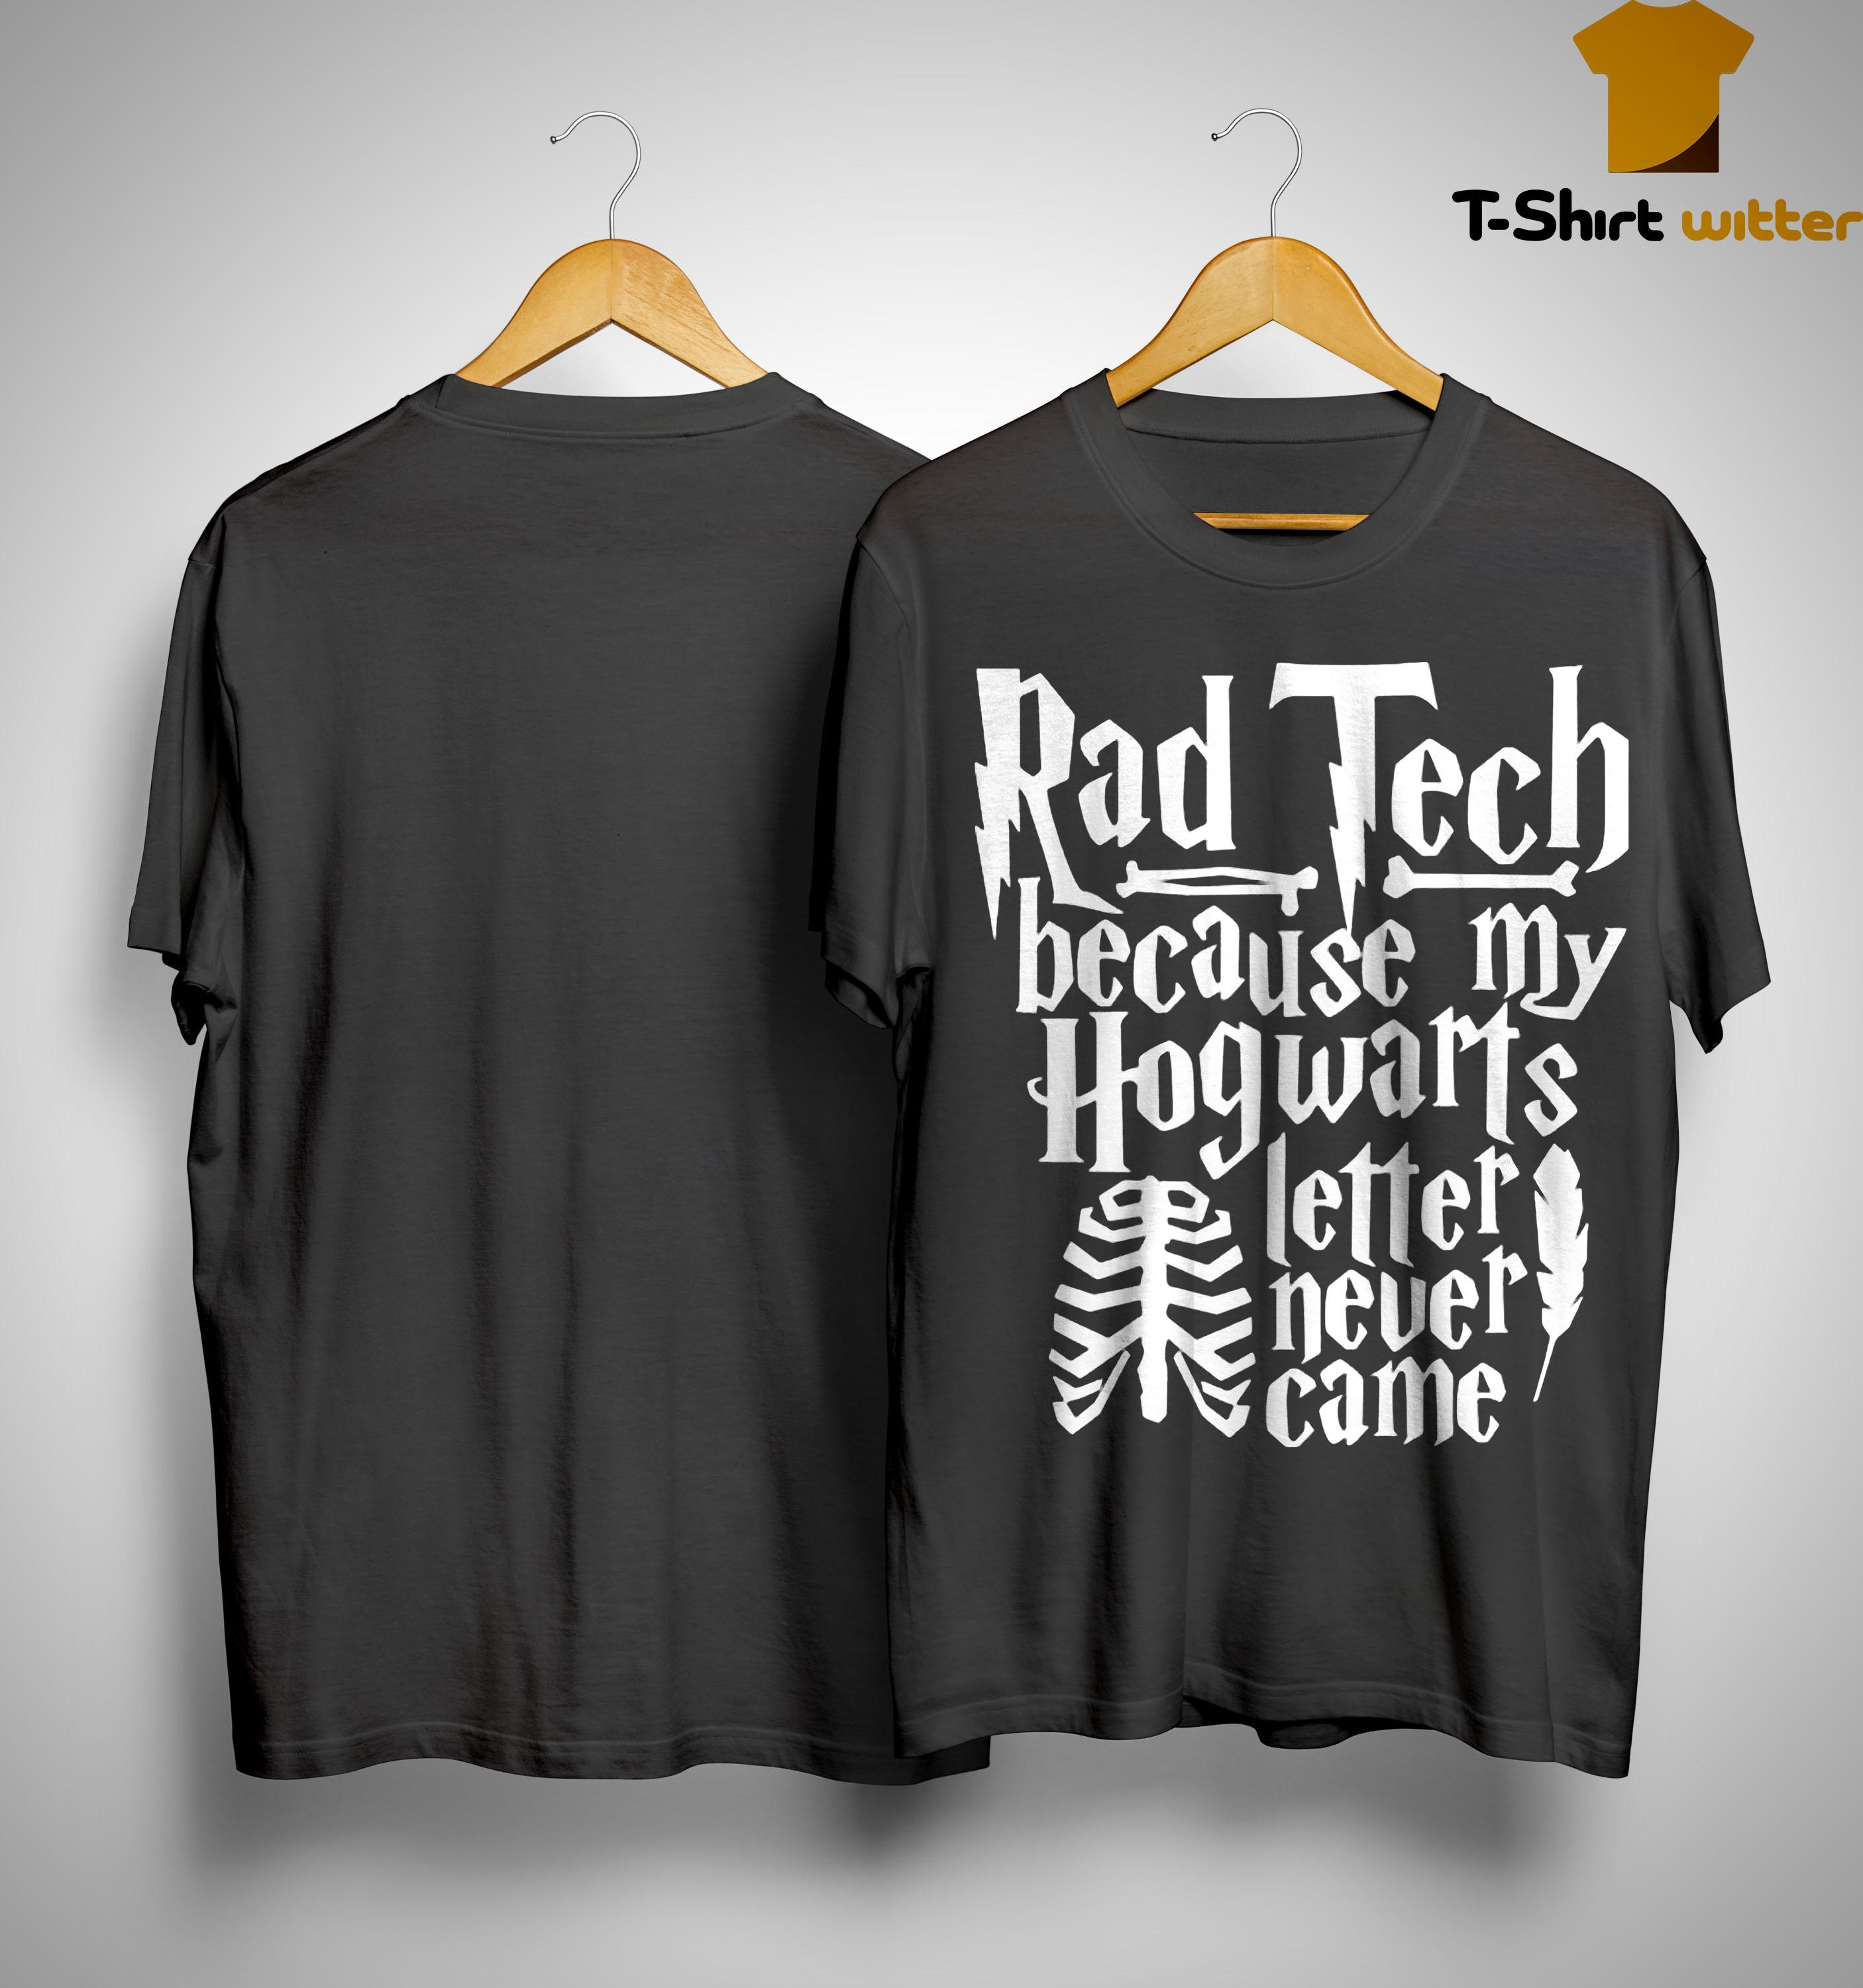 Rad Tech Because My Hogwarts Letter Never Came Shirt